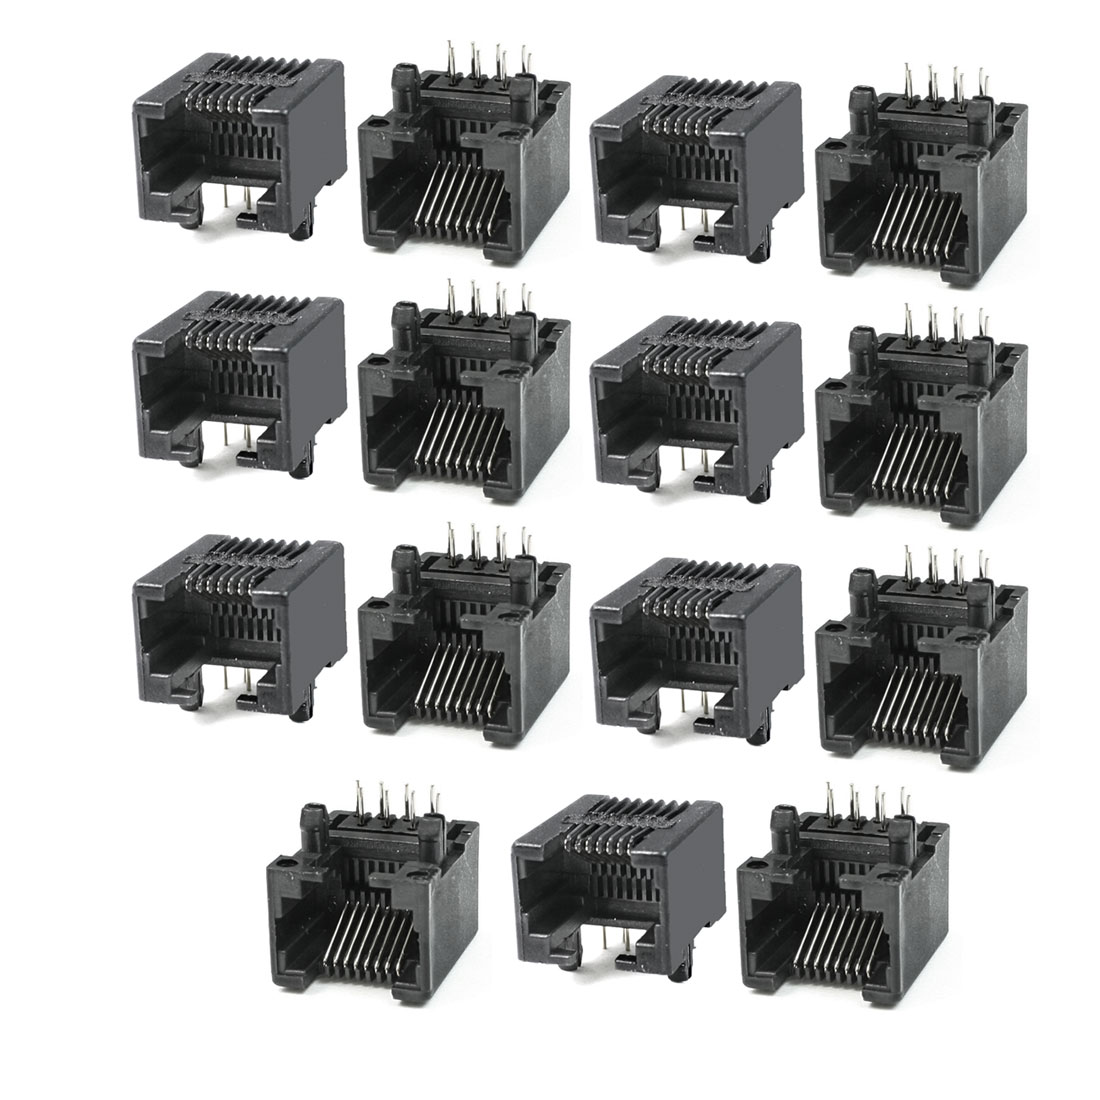 15 Pcs 17.5mm Long Black Plastic Shell 8P8C RJ45 Jacks Sockets Ports